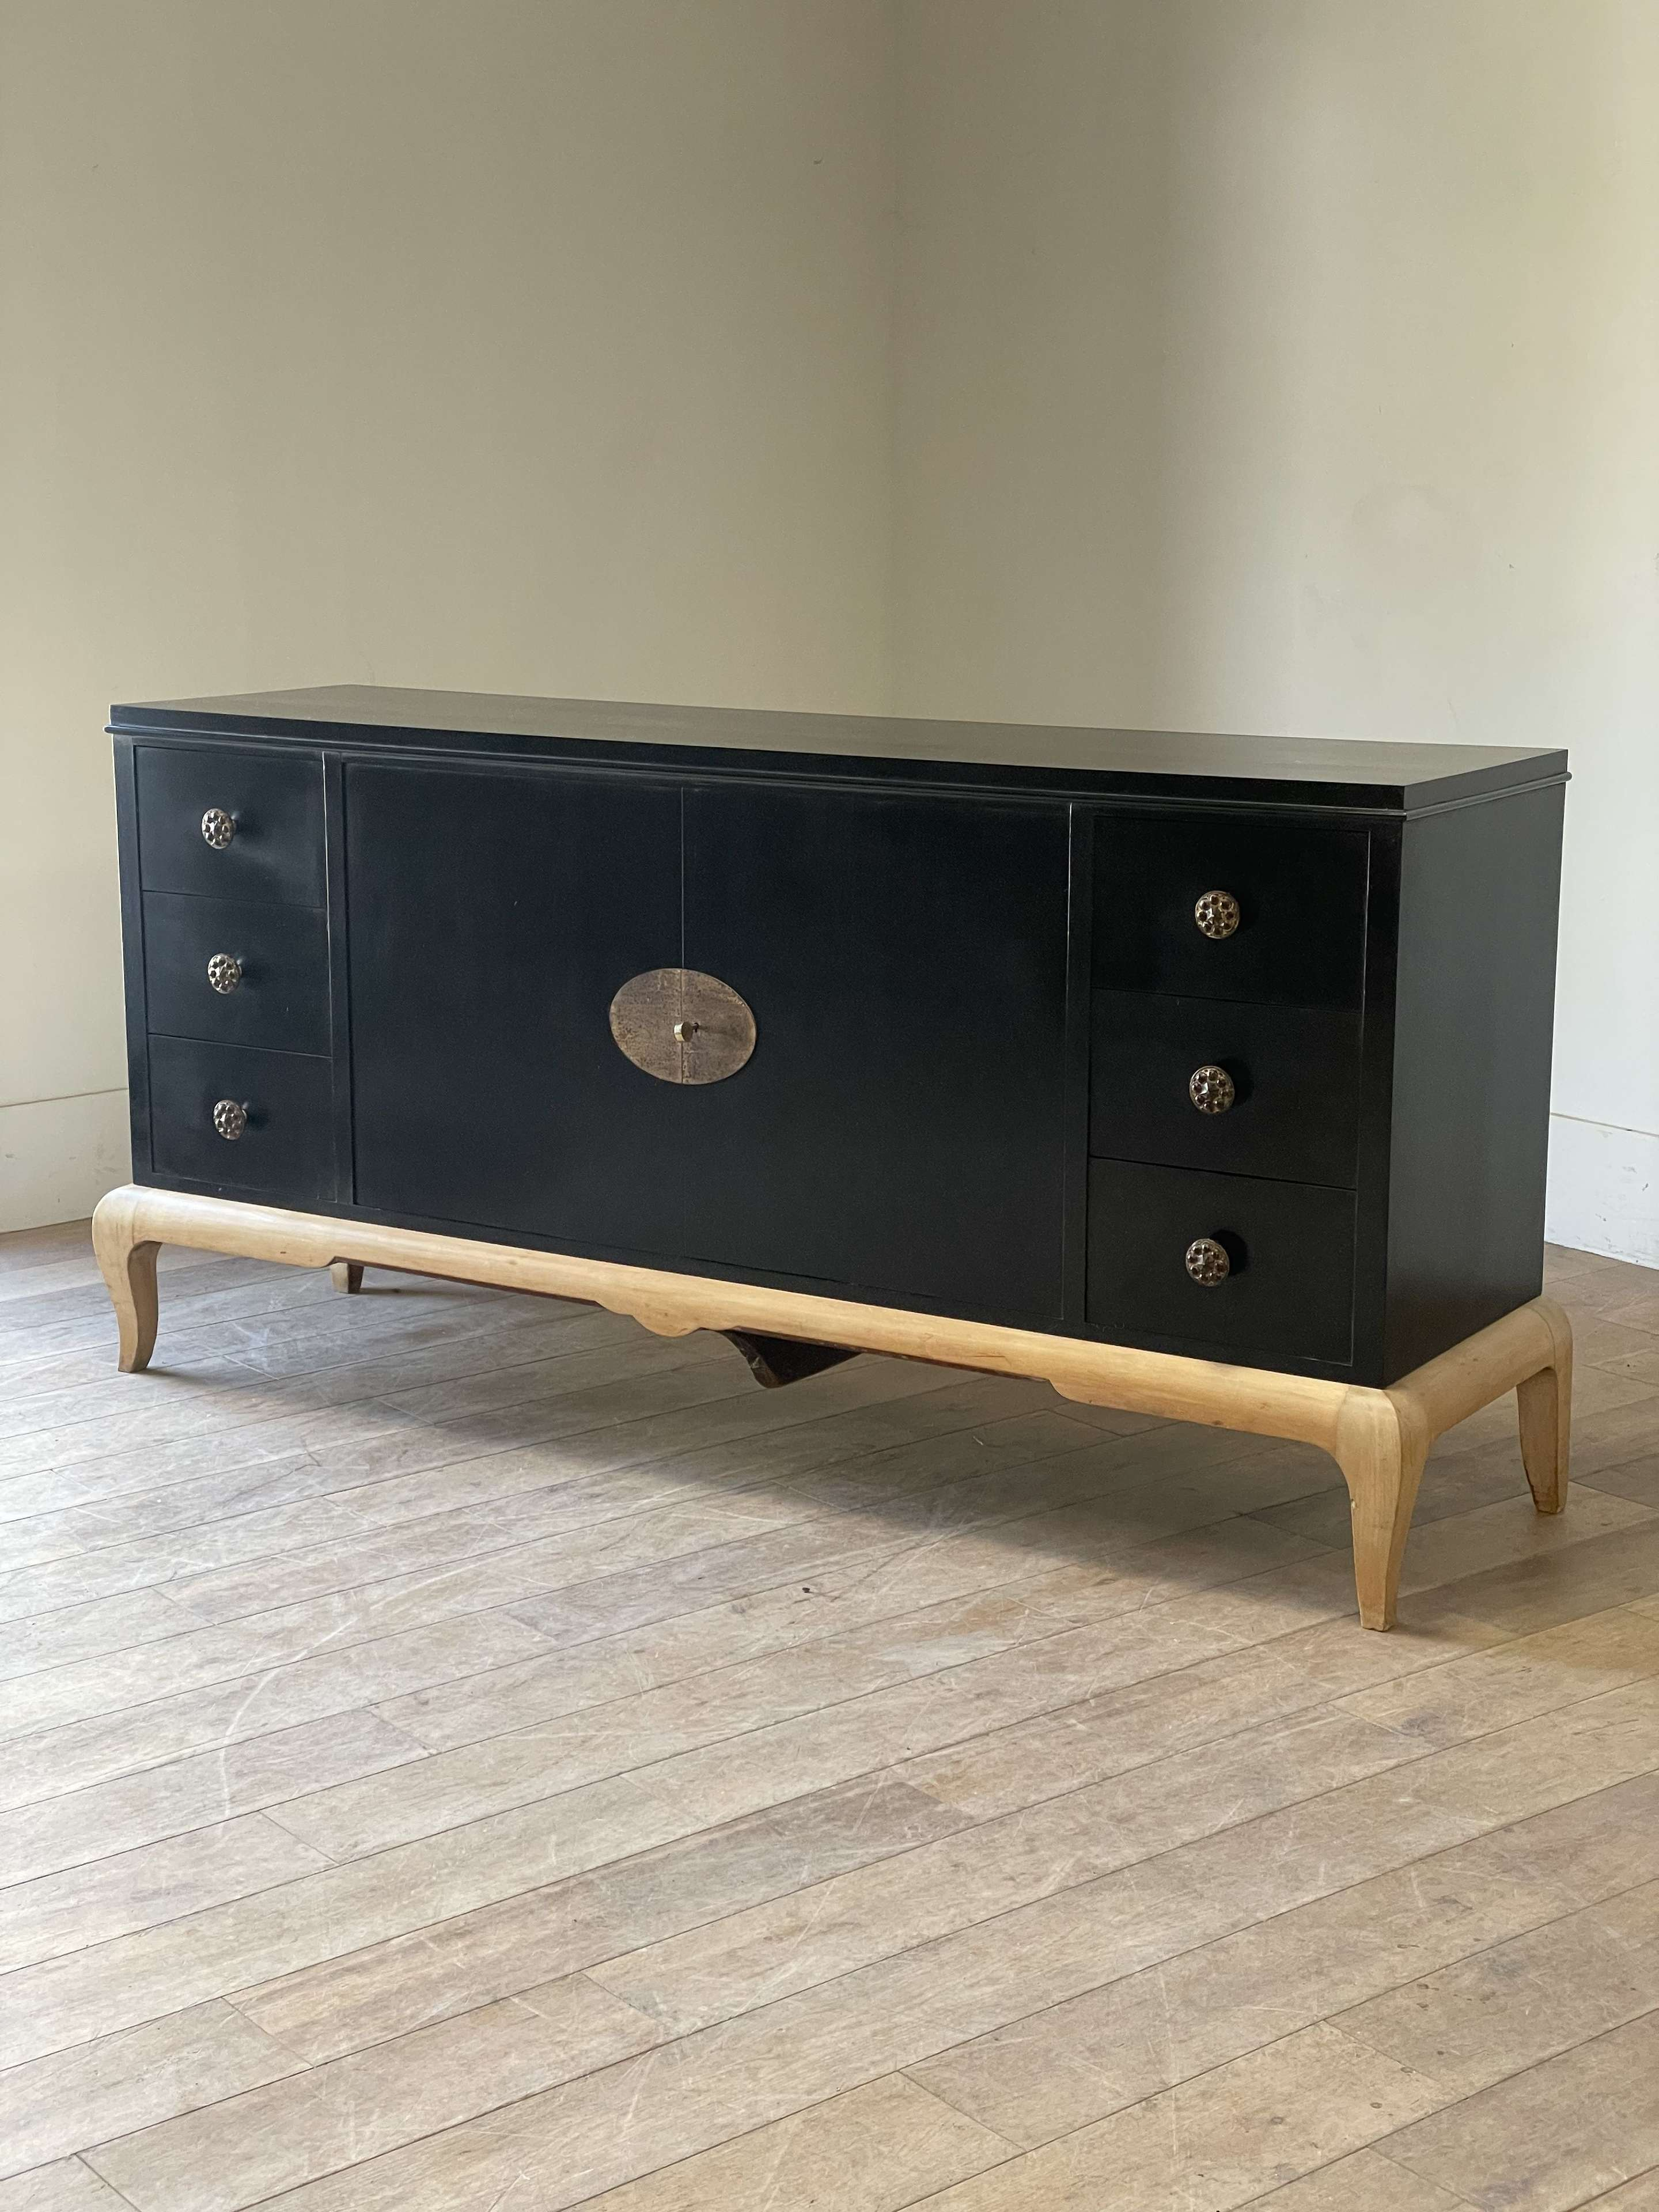 A 1930s French Commode in the style of Arbus